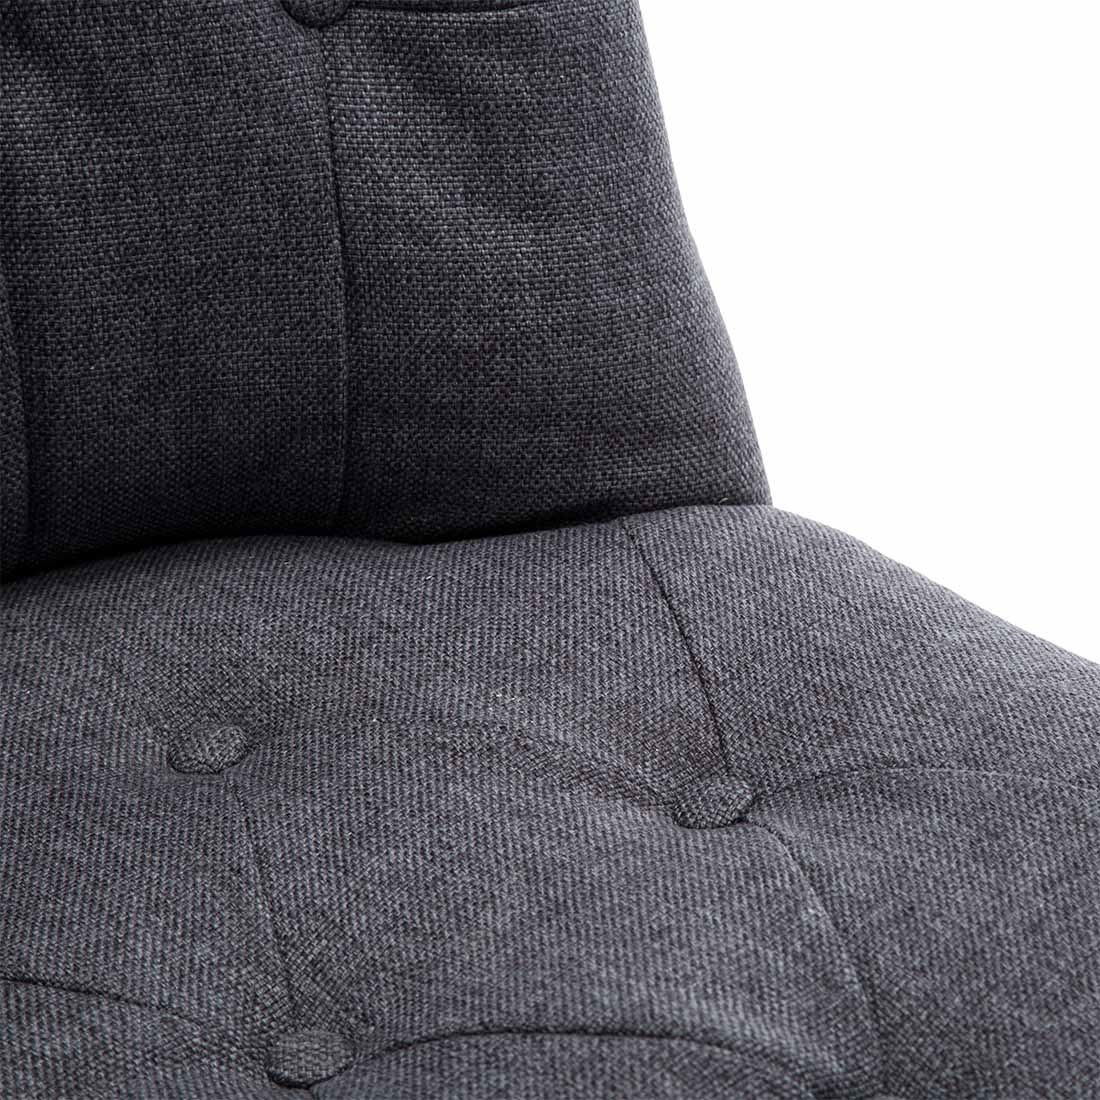 Keela-Velvet-Linen-Button-Back-Occasional-Accent-Bedroom-Lounge-Chair-Tub-Fabric thumbnail 12